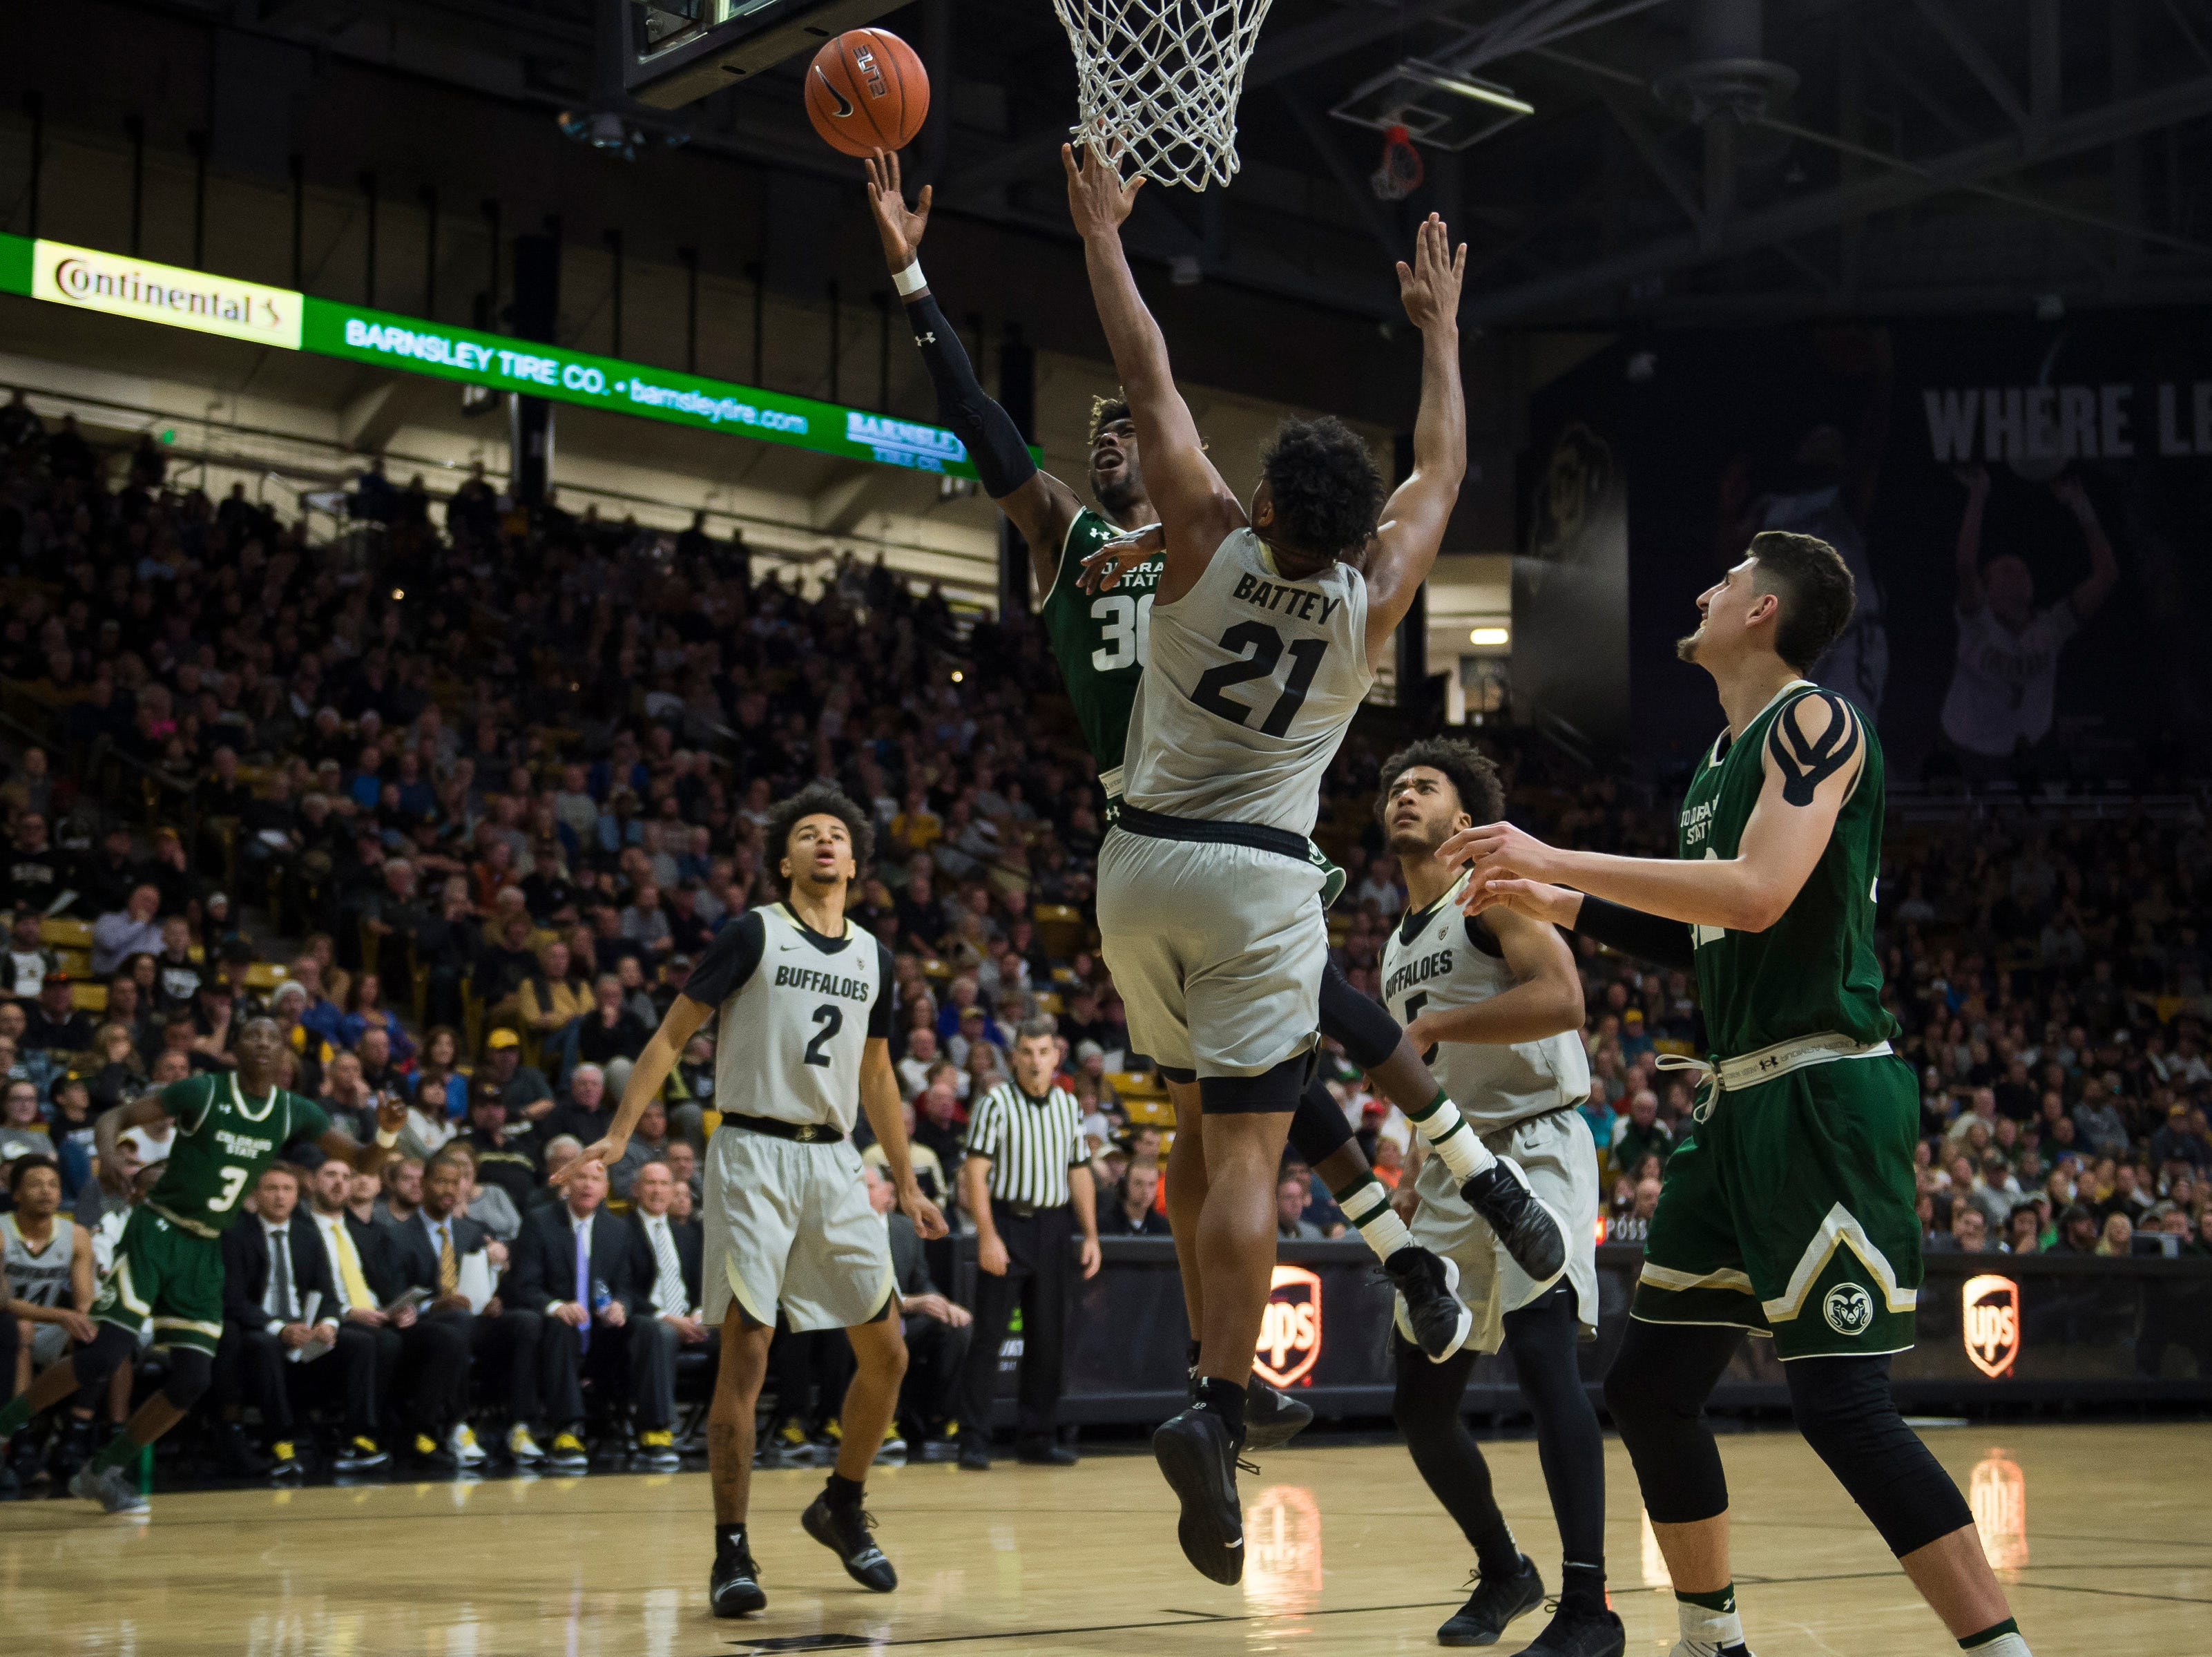 Colorado State University junior guard Kris Martin (30) gets a shot past University of Colorado freshman forward Evan Battey (21) on Saturday, Dec. 1, 2018, at the CU Event Center in Boulder, Colo.